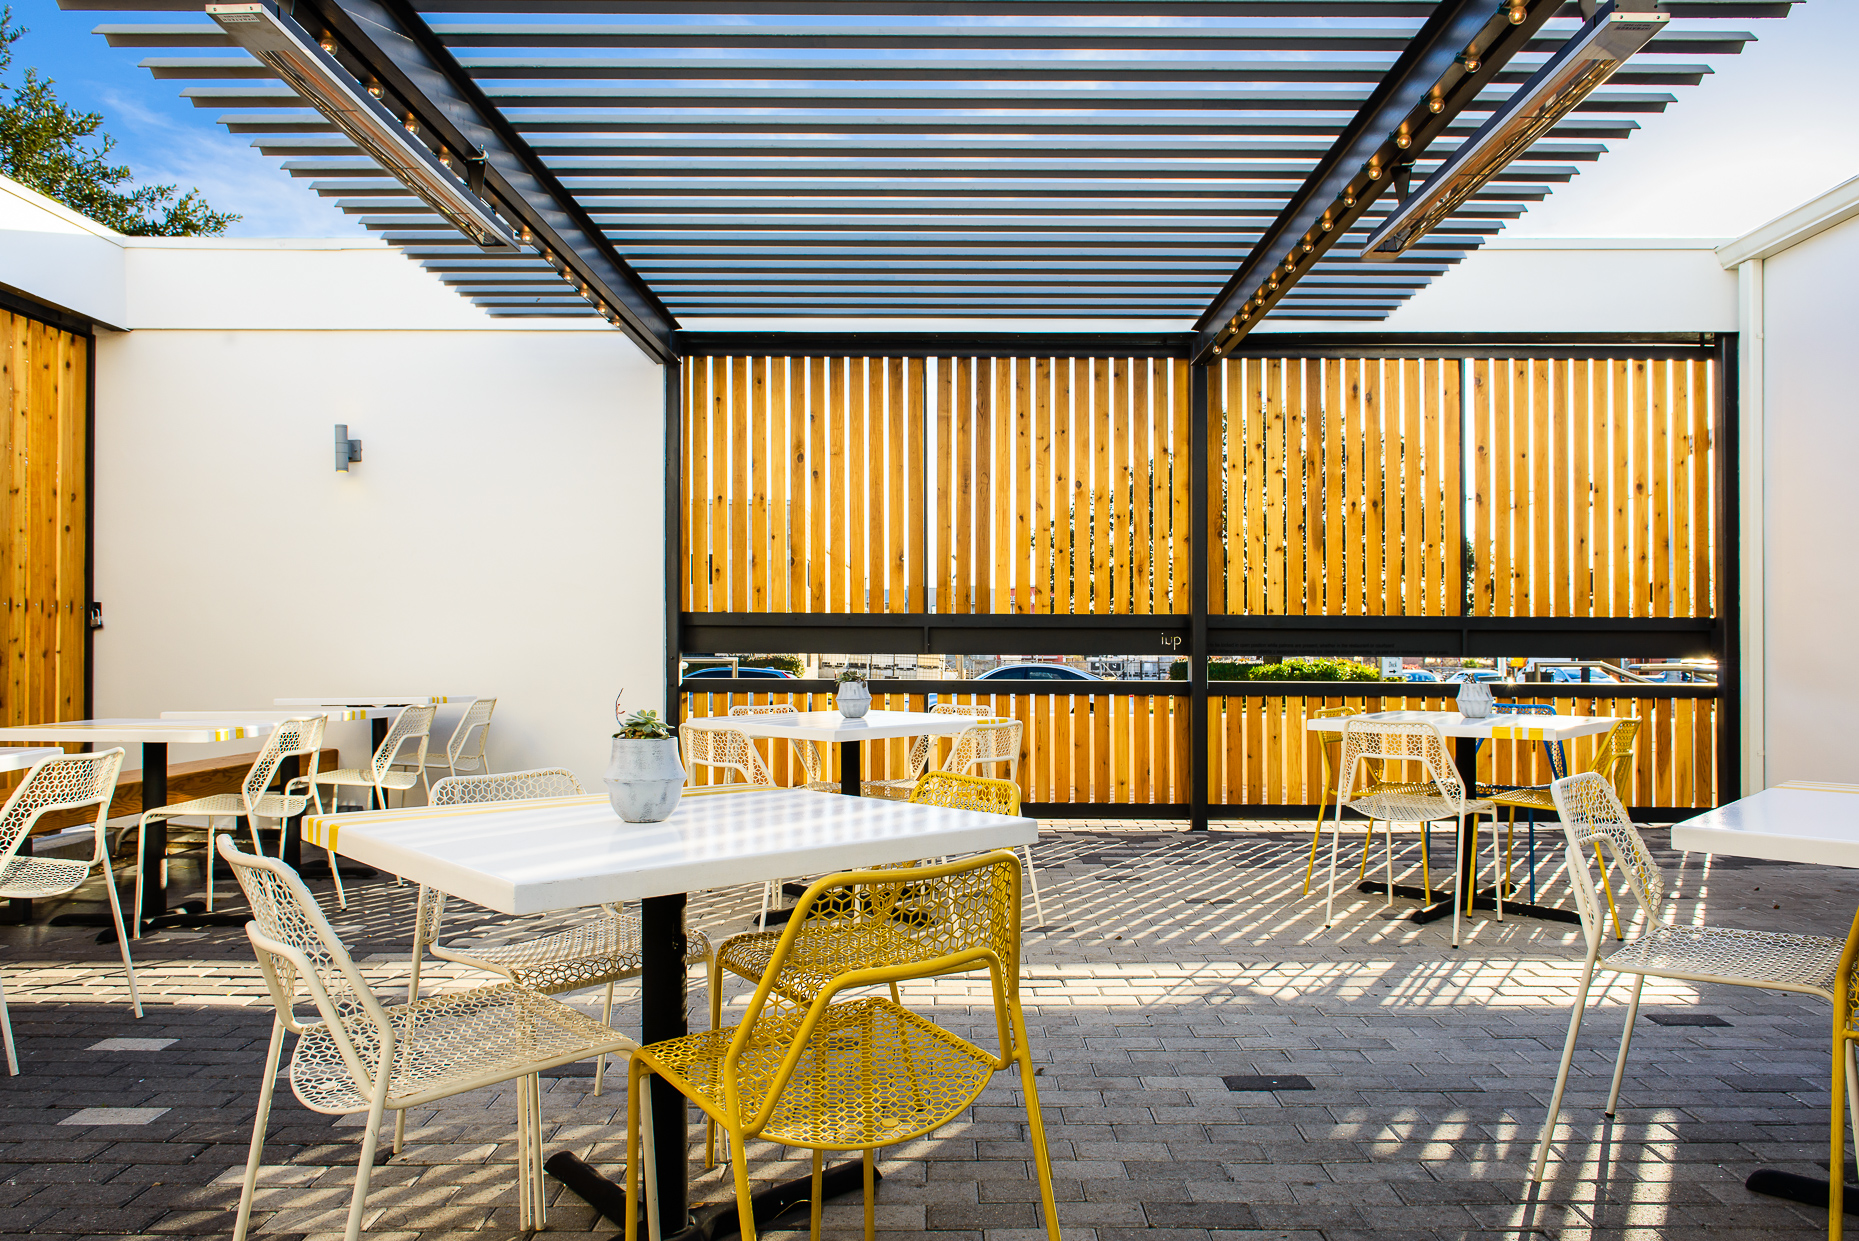 Austin-Commercial-Photographers-Architectural-Interior-Design-Qui-Restaurant-Patio